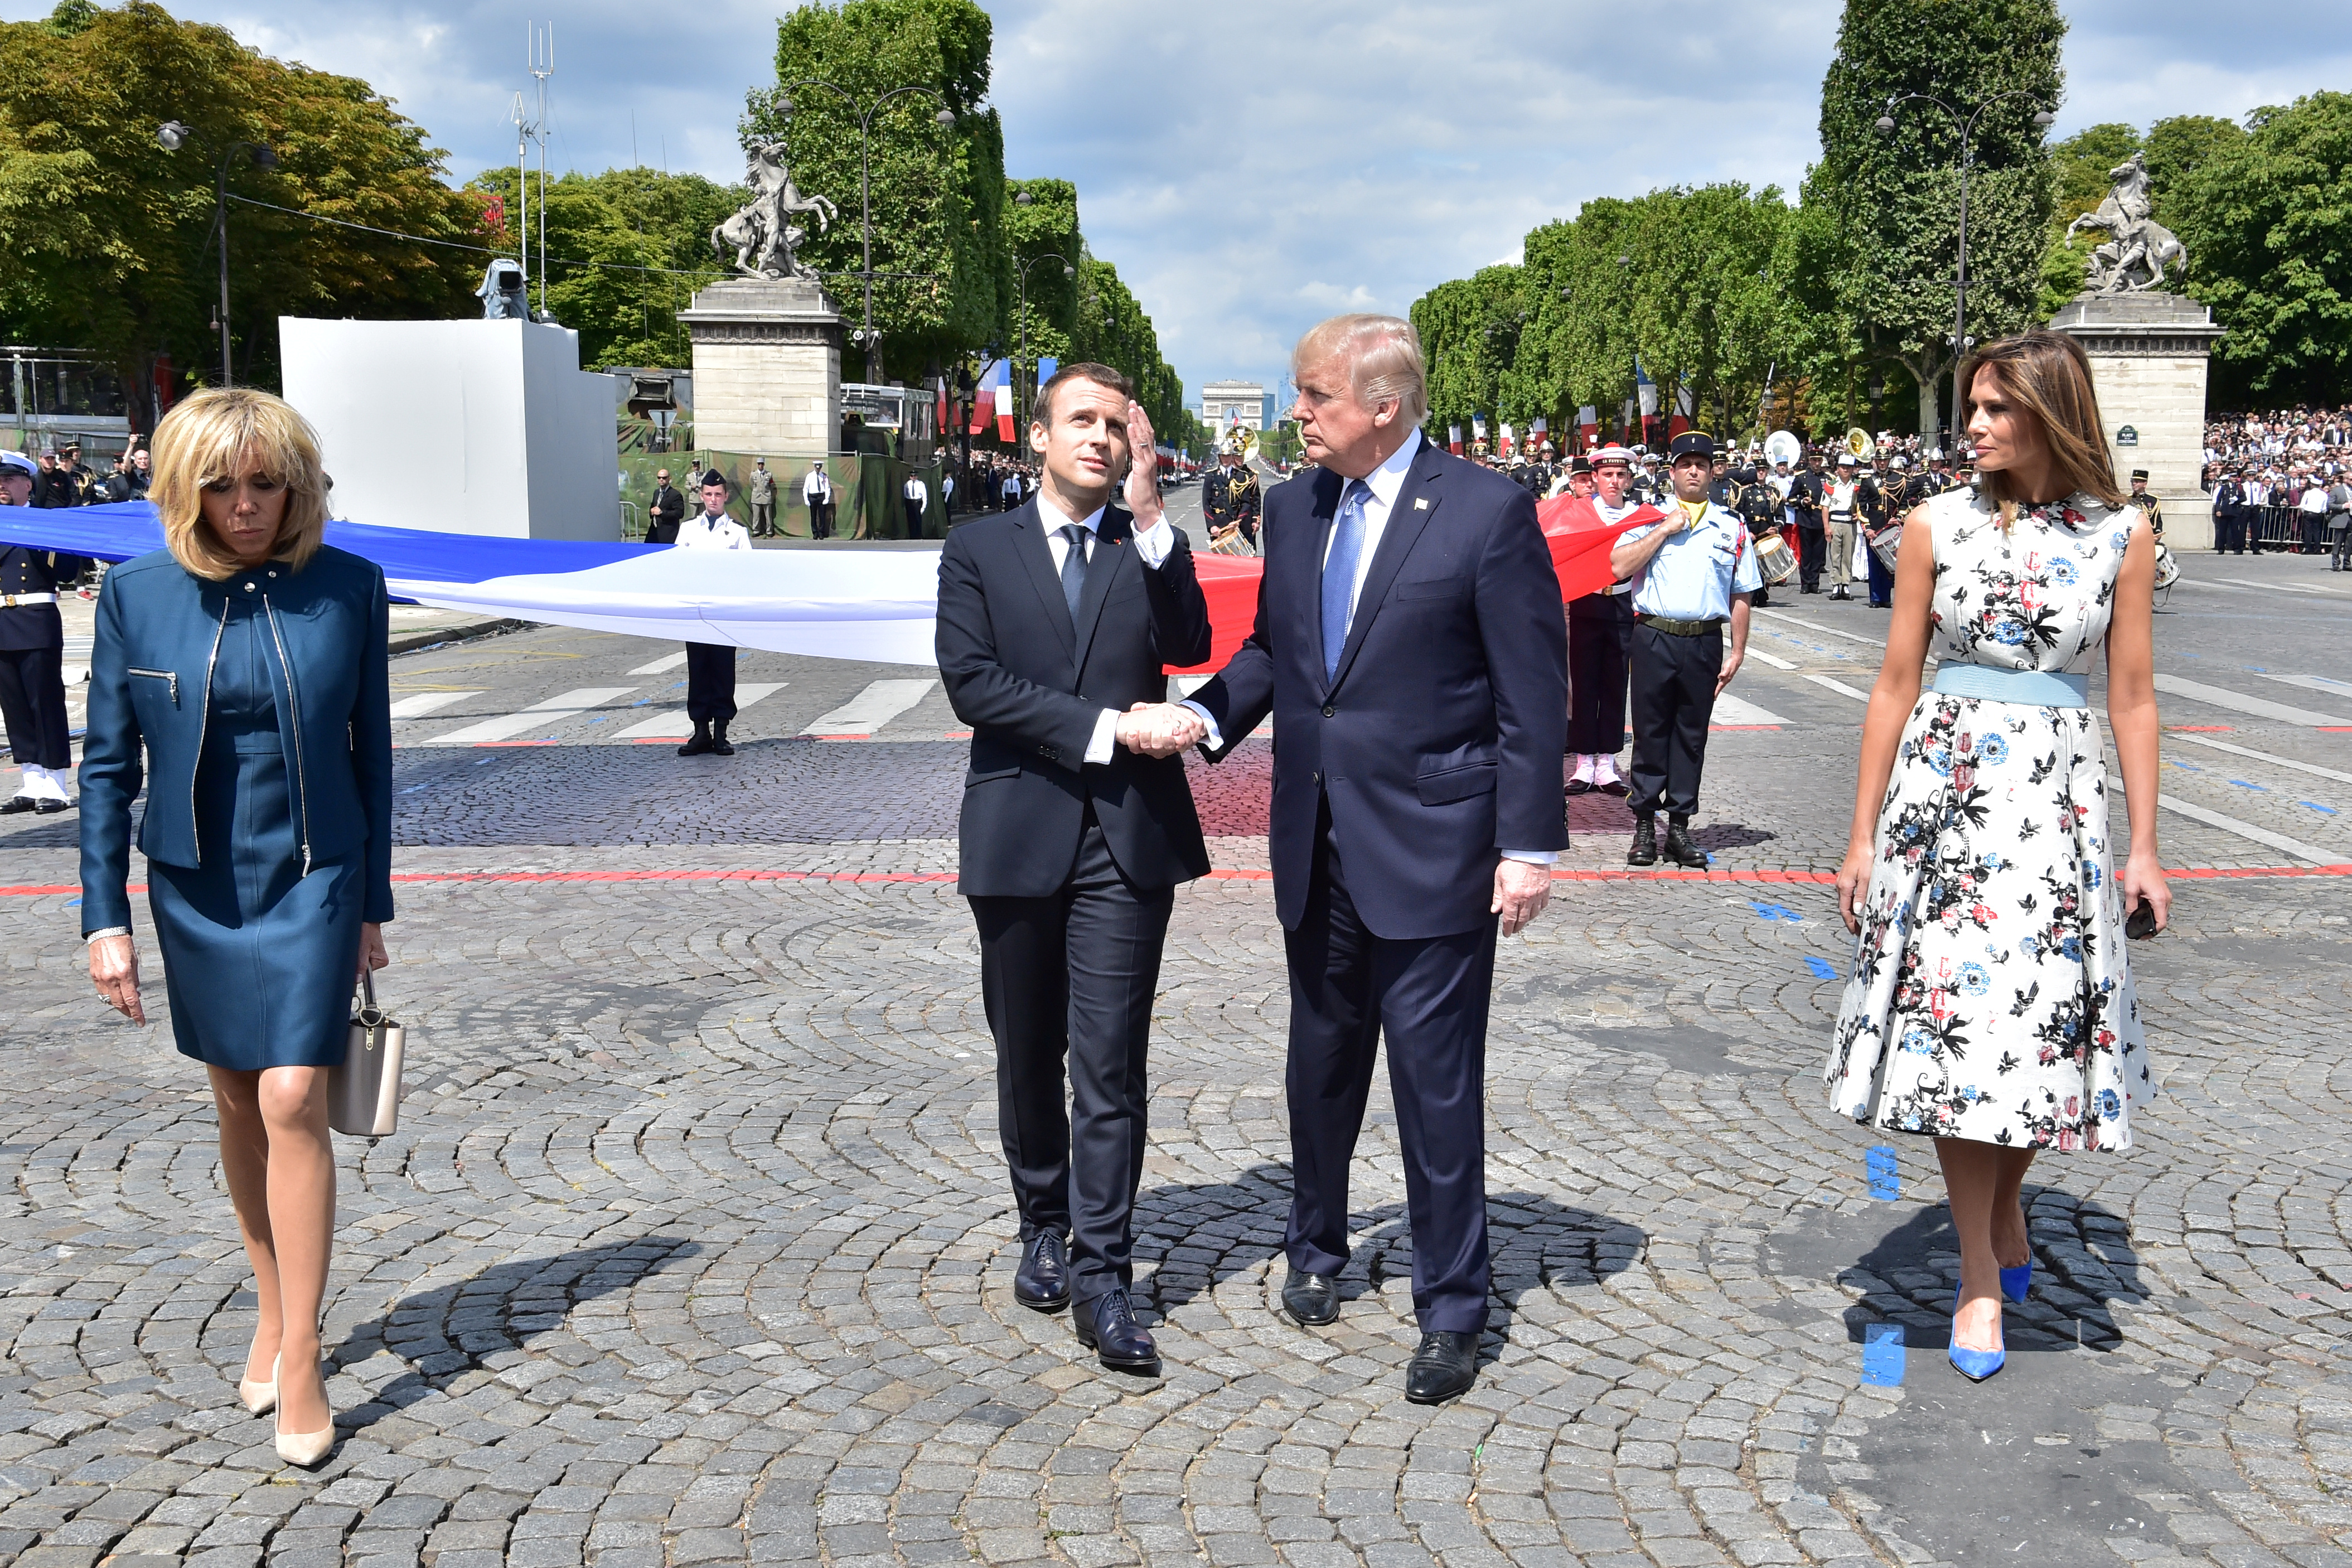 French President Emmanuel Macron (C-L) shakes hands with U.S. President Donald Trump, next to Macron's wife Brigitte Macron (L) and U.S. First Lady Melania Trump during the traditional Bastille Day military parade on the Champs-Elysees avenue in Paris, France, July 14, 2017. REUTERS/Christophe Archambault/Pool - RC127EEC3070